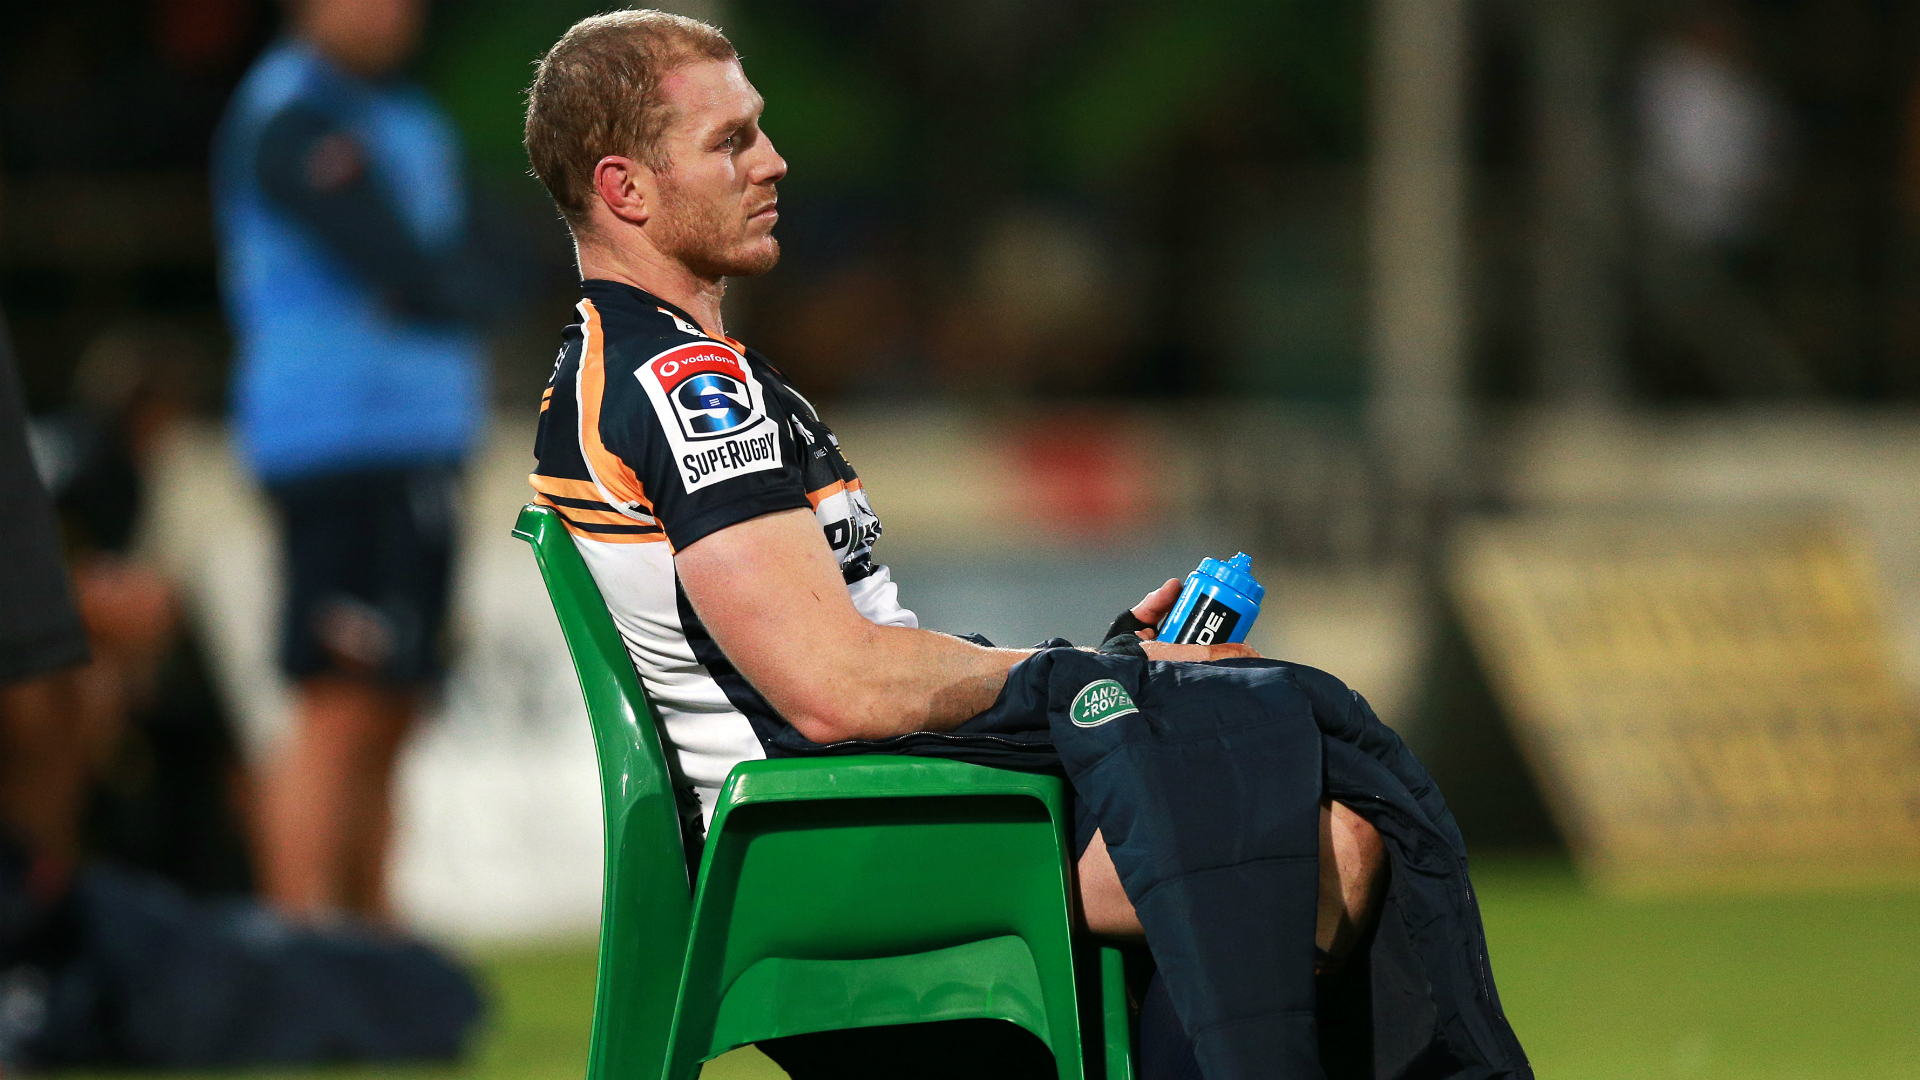 Pocock exits Brumbies after ending Super Rugby career